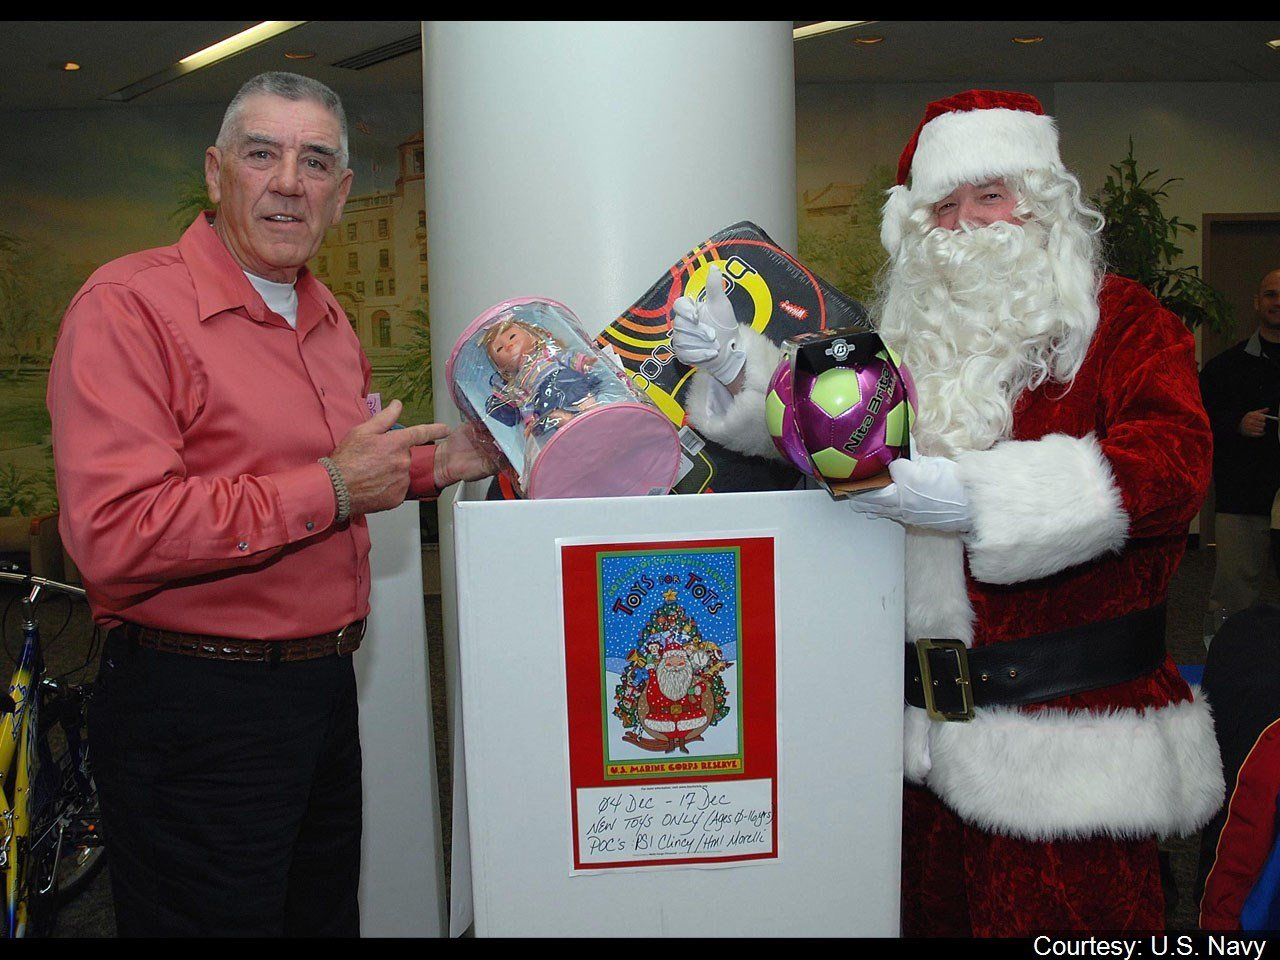 Former U.S. Marine Corps drill instructor turned actor R. Lee Ermey, left, joins Santa Claus to put toys into the Toys for Tots donation box at Naval Medical Center San Diego/ MGN Online